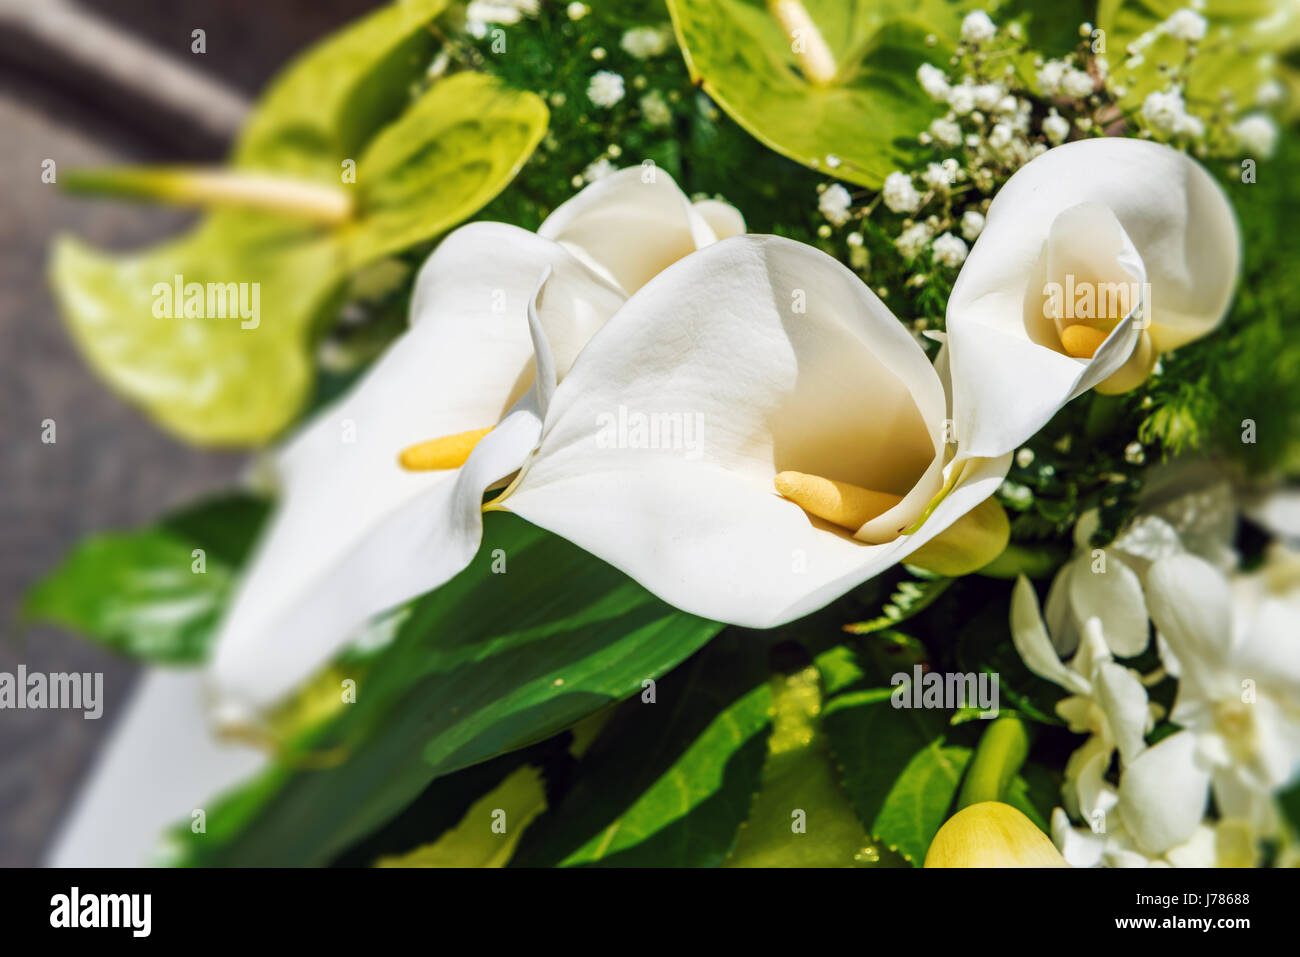 Flower arrangement with white arums and green anthuriums in a close up view on the spadix and spathe of the flower - Stock Image